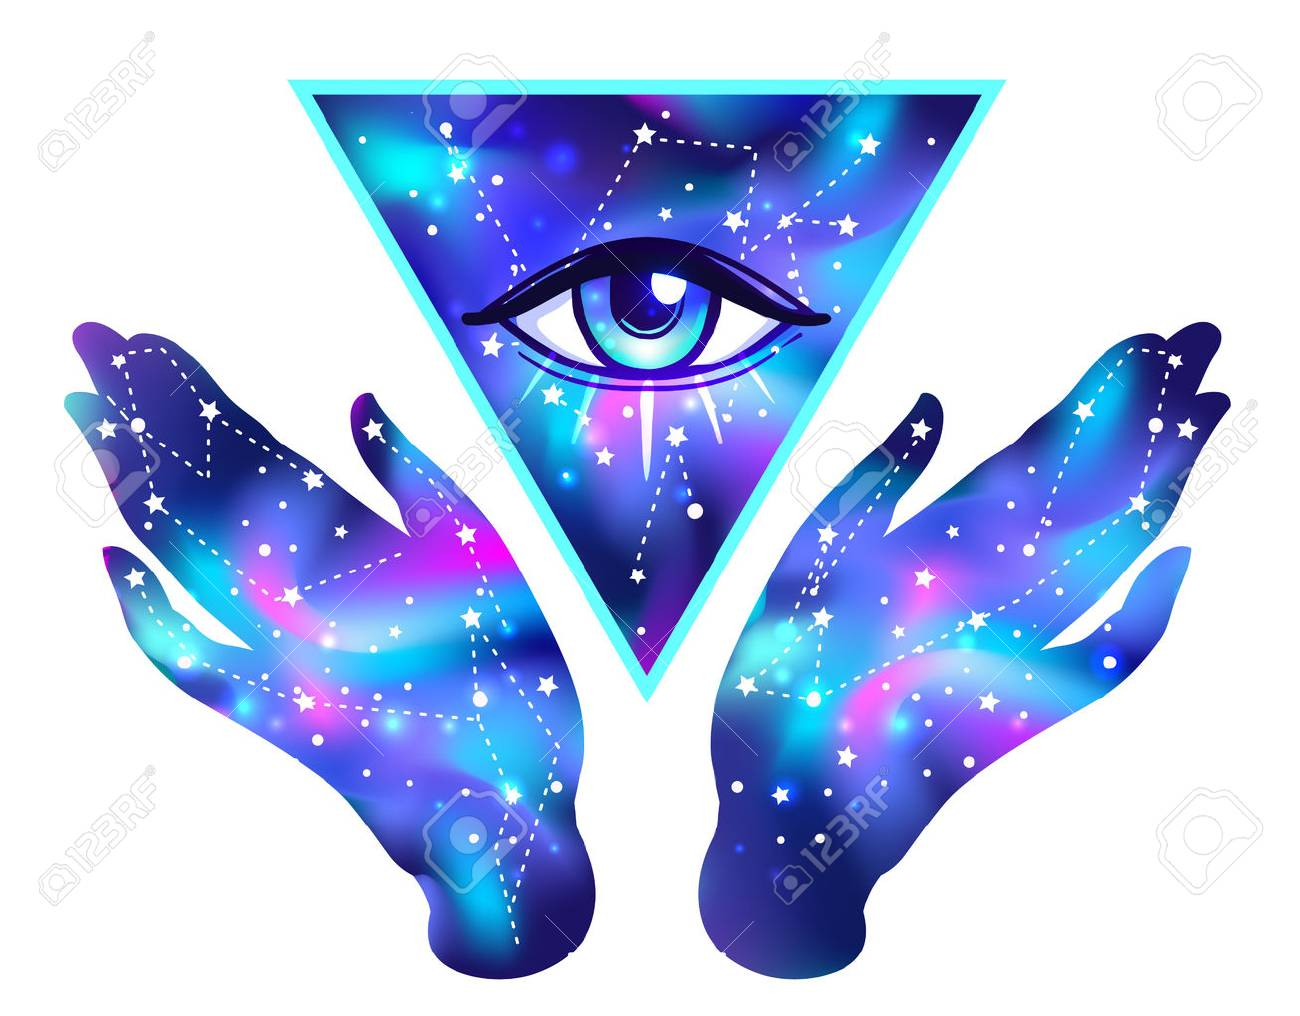 Open hands with galaxy inside open around masonic symbol. New World Order. Hand-drawn alchemy, religion, spirituality, occultism. Vector isolated on white. Astrology, Sacred Spirit. - 78830700